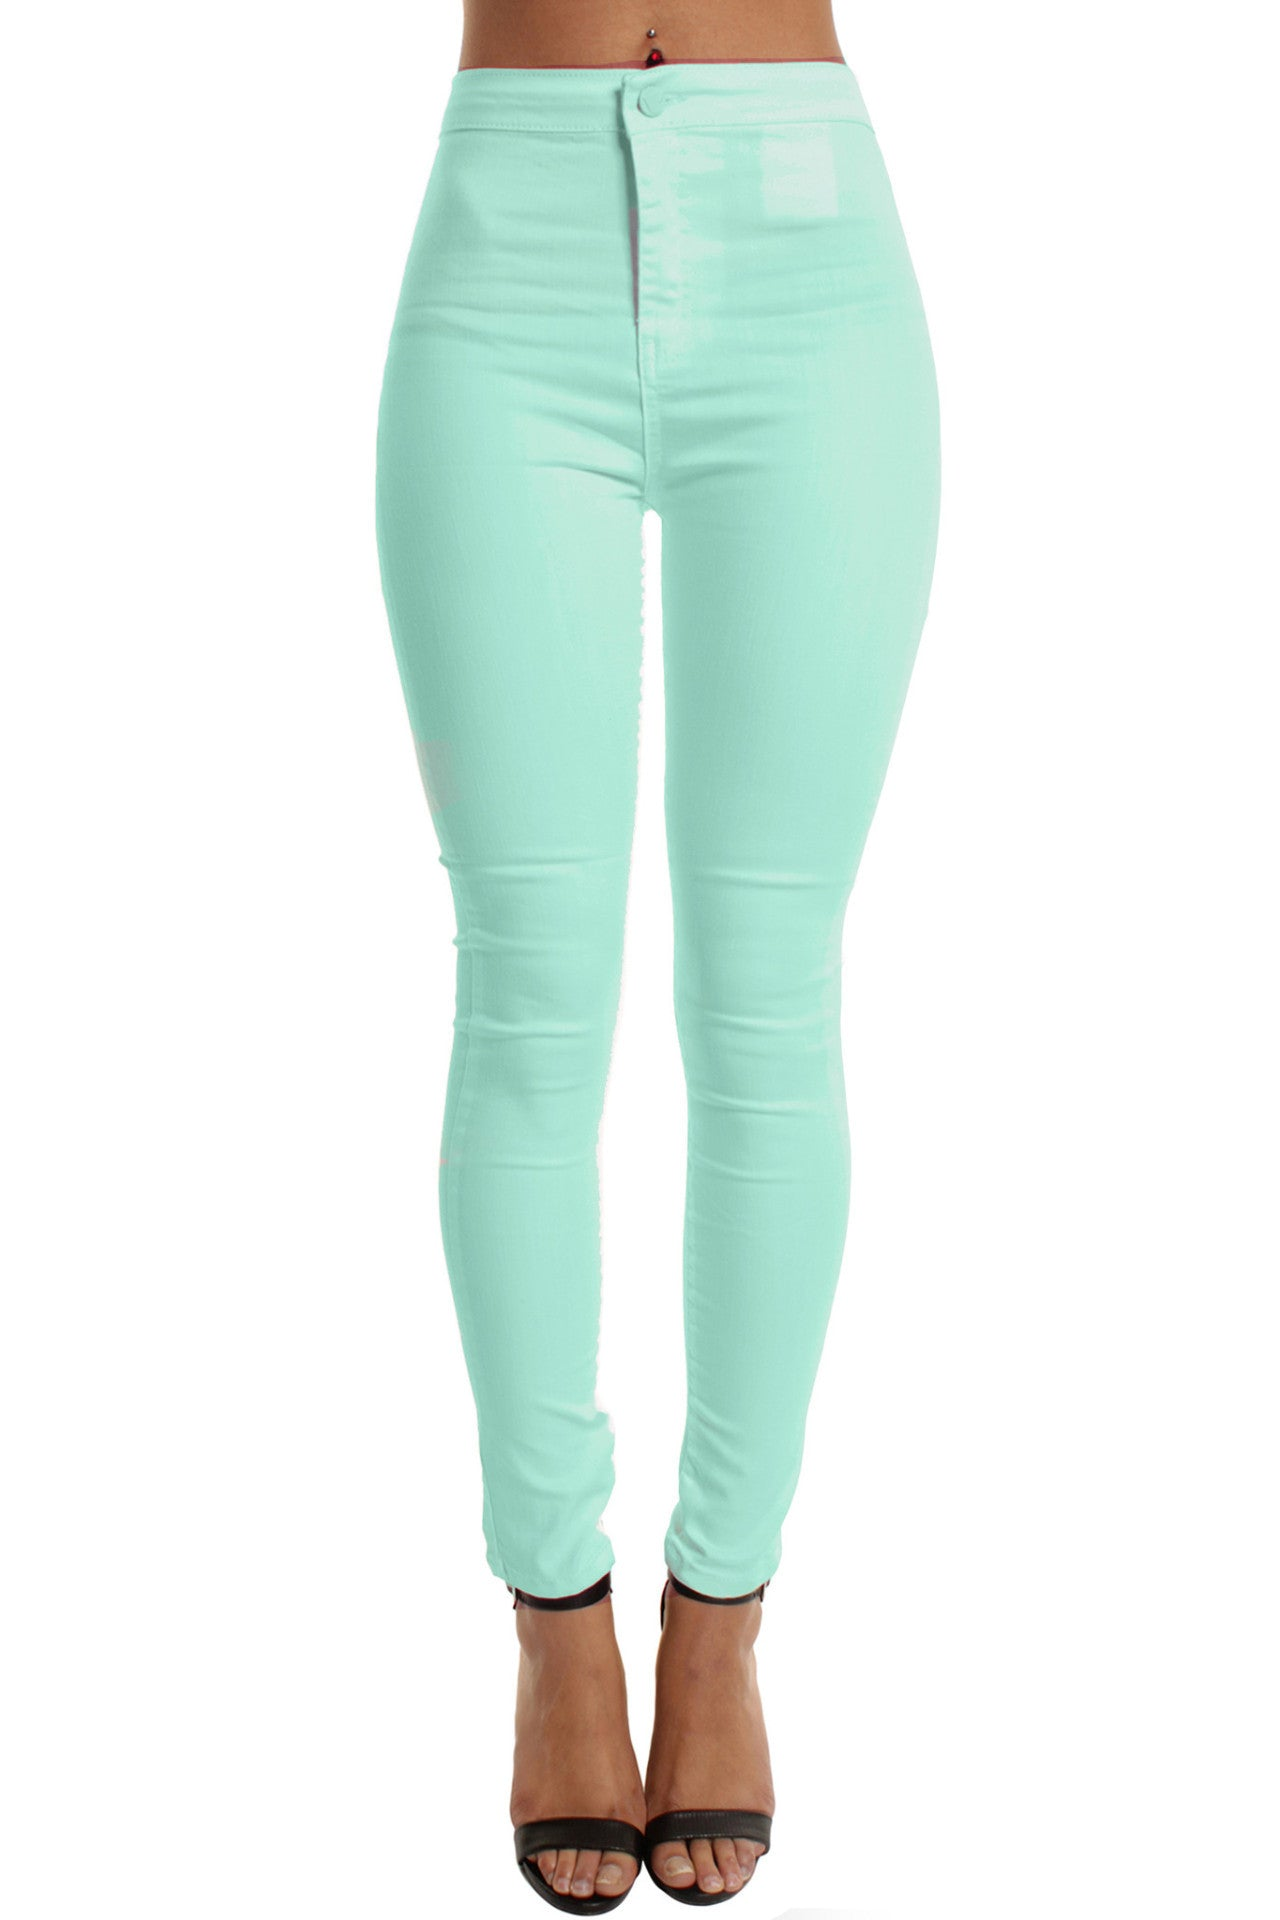 Turquoise High Waisted Plain Skinny Jeans